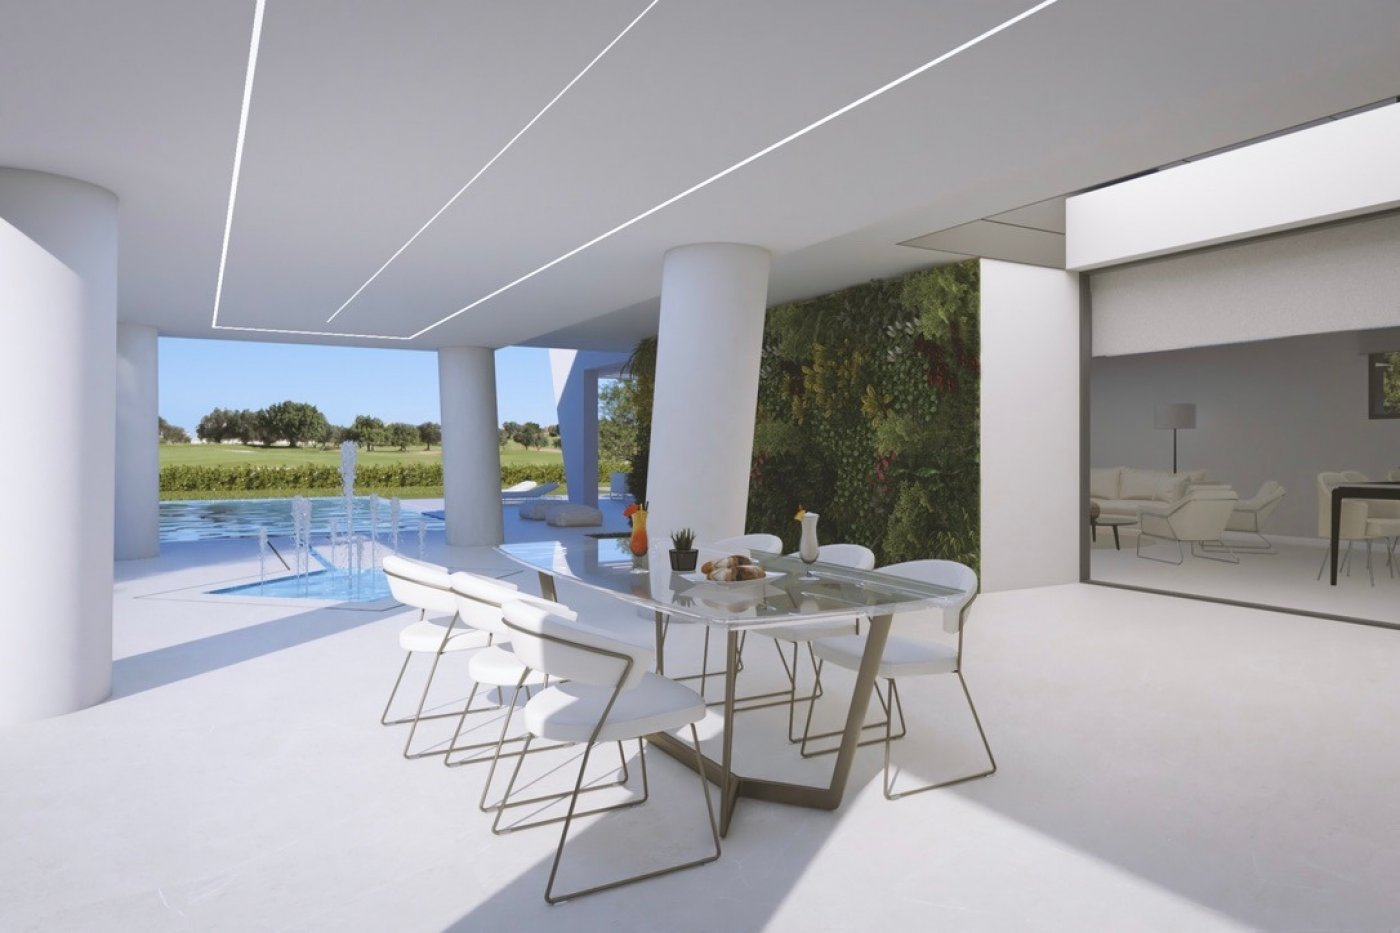 Gallery Image 1 of Exceptional luxurious large 5 bed front line golf villa